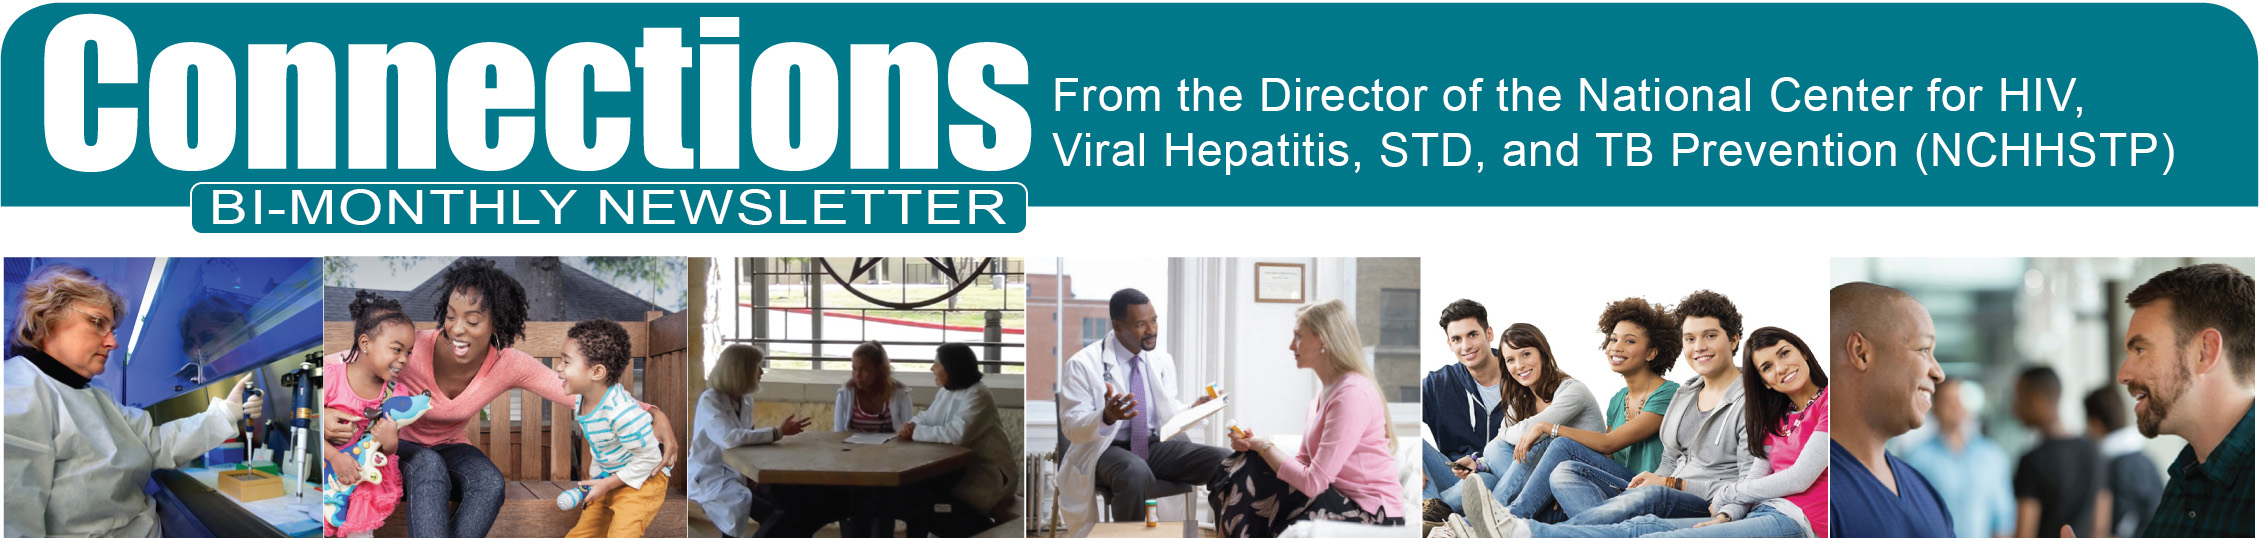 Connection Bi-monthly Newsletter From the Director of the National Center for HIV/AIDS, Viral Hepatitis, STD, and TB Prevention